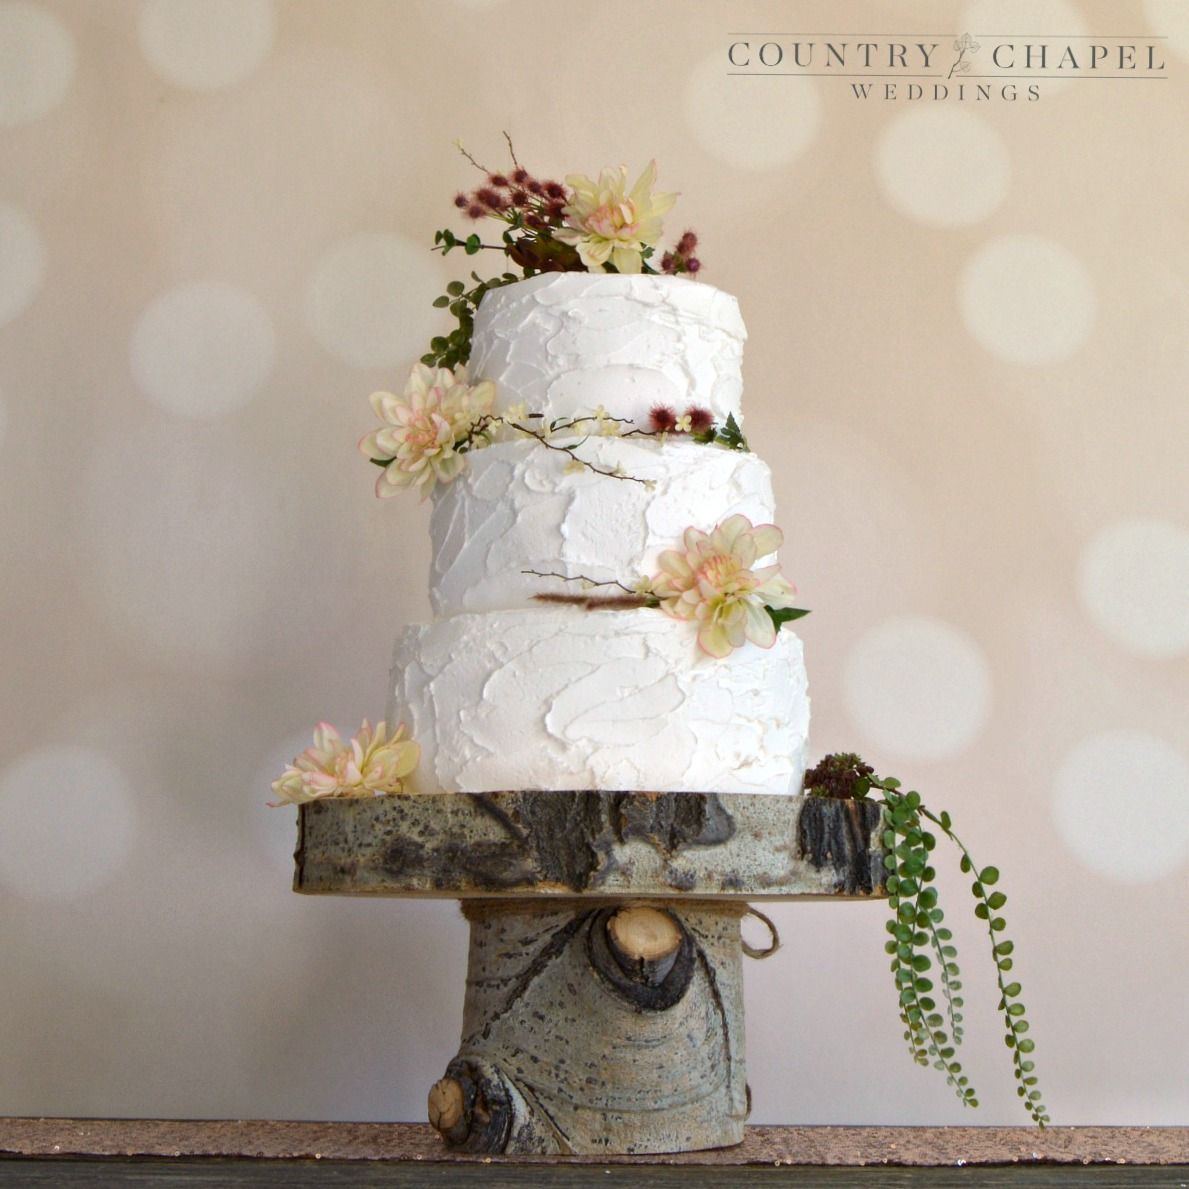 Tiered cake stand aspen inches inches in wedding